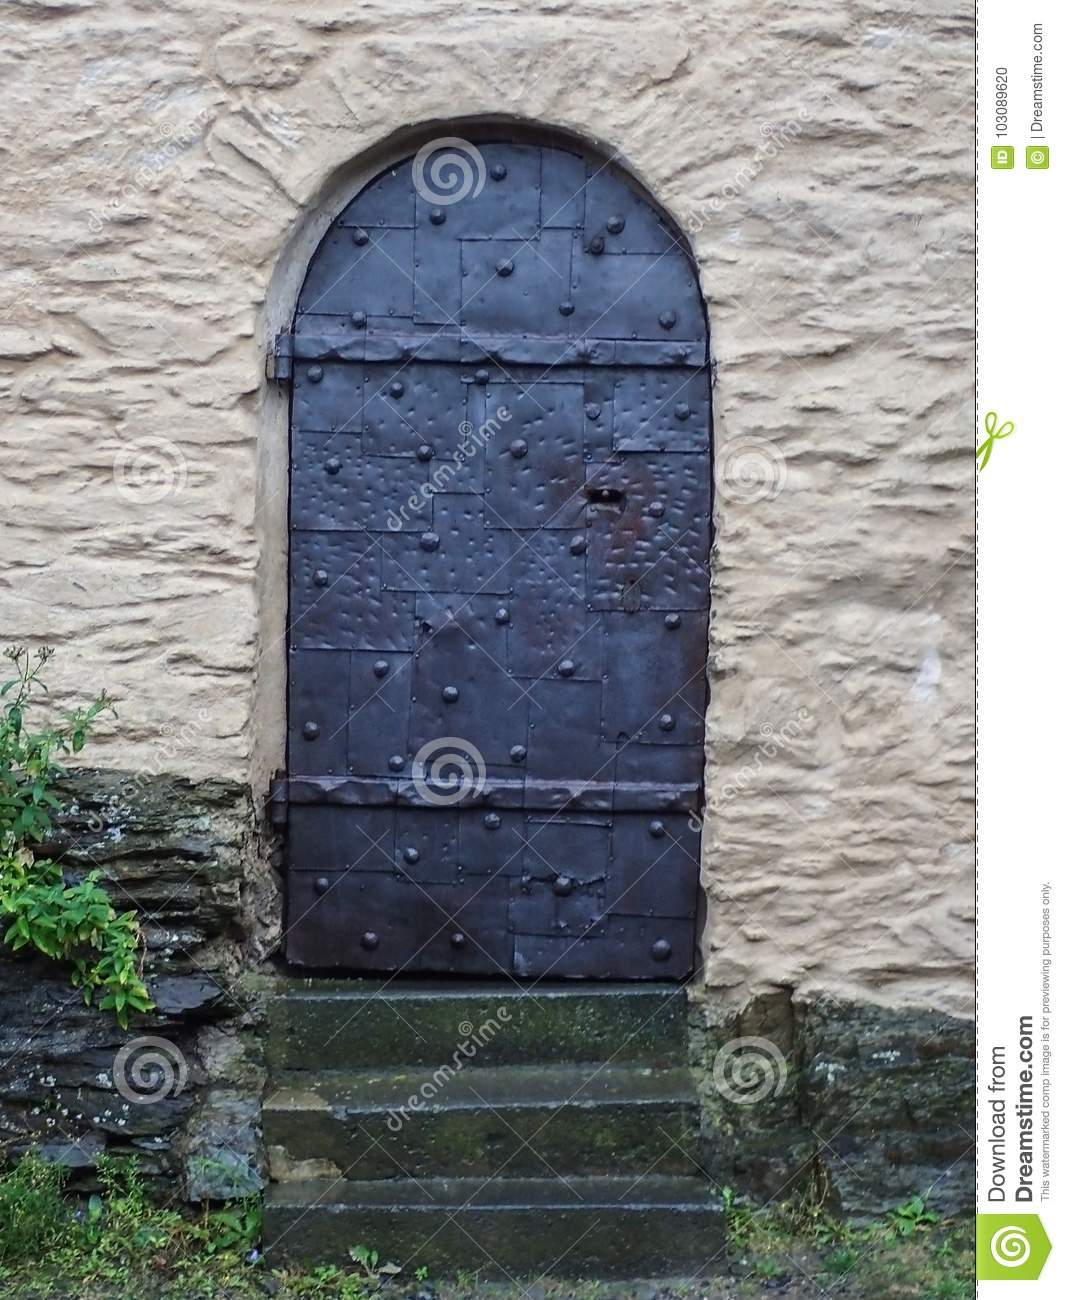 Quirky Castle Door Made of Iron Sheets and Bolts